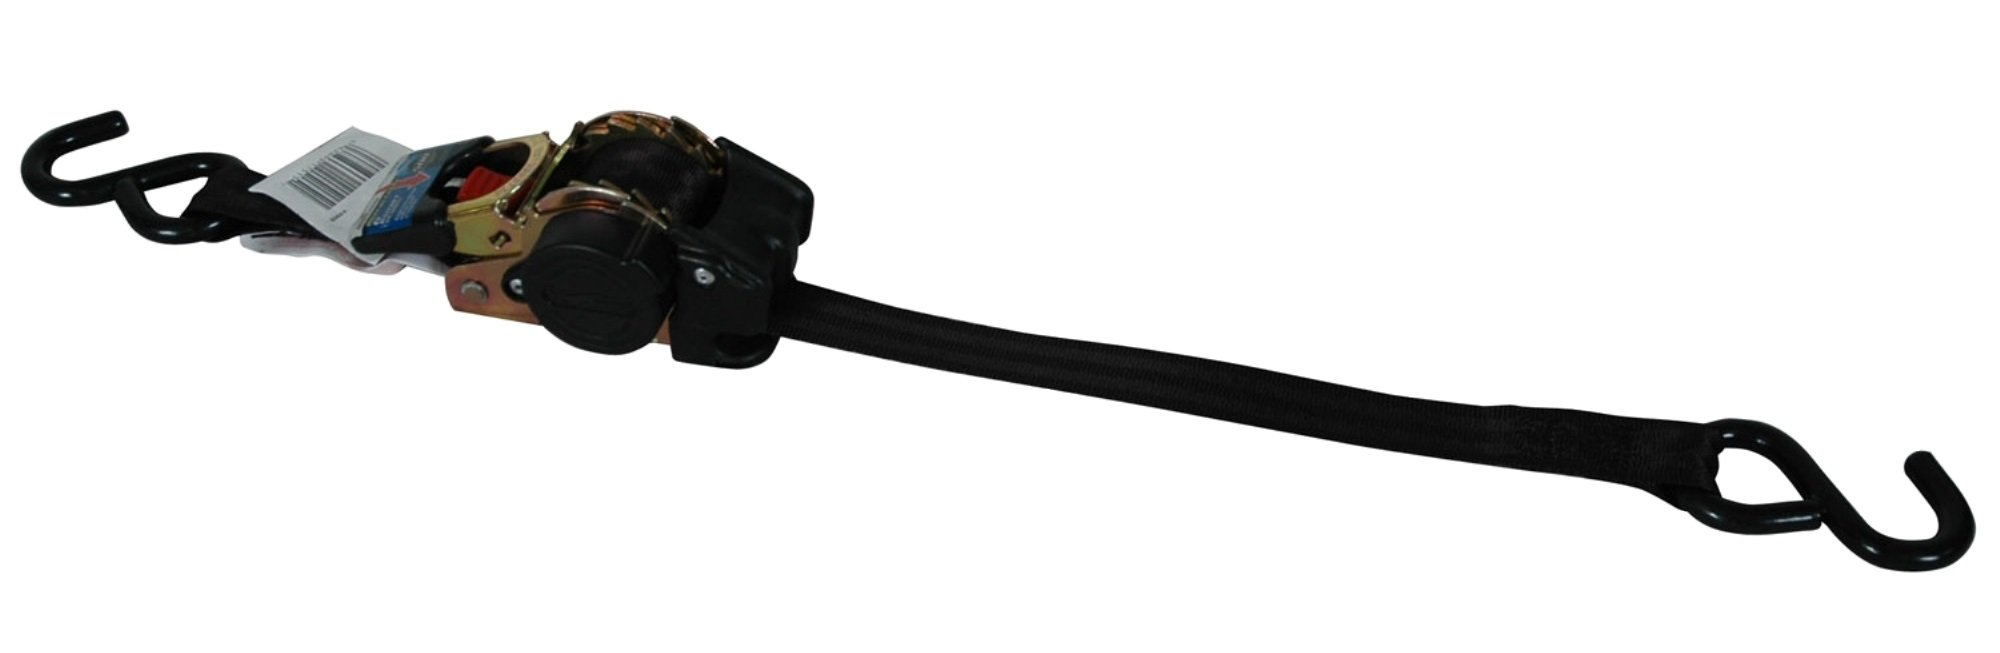 Highland (1151500) Black 6' Retractable Ratchet Tie Down with Hooks